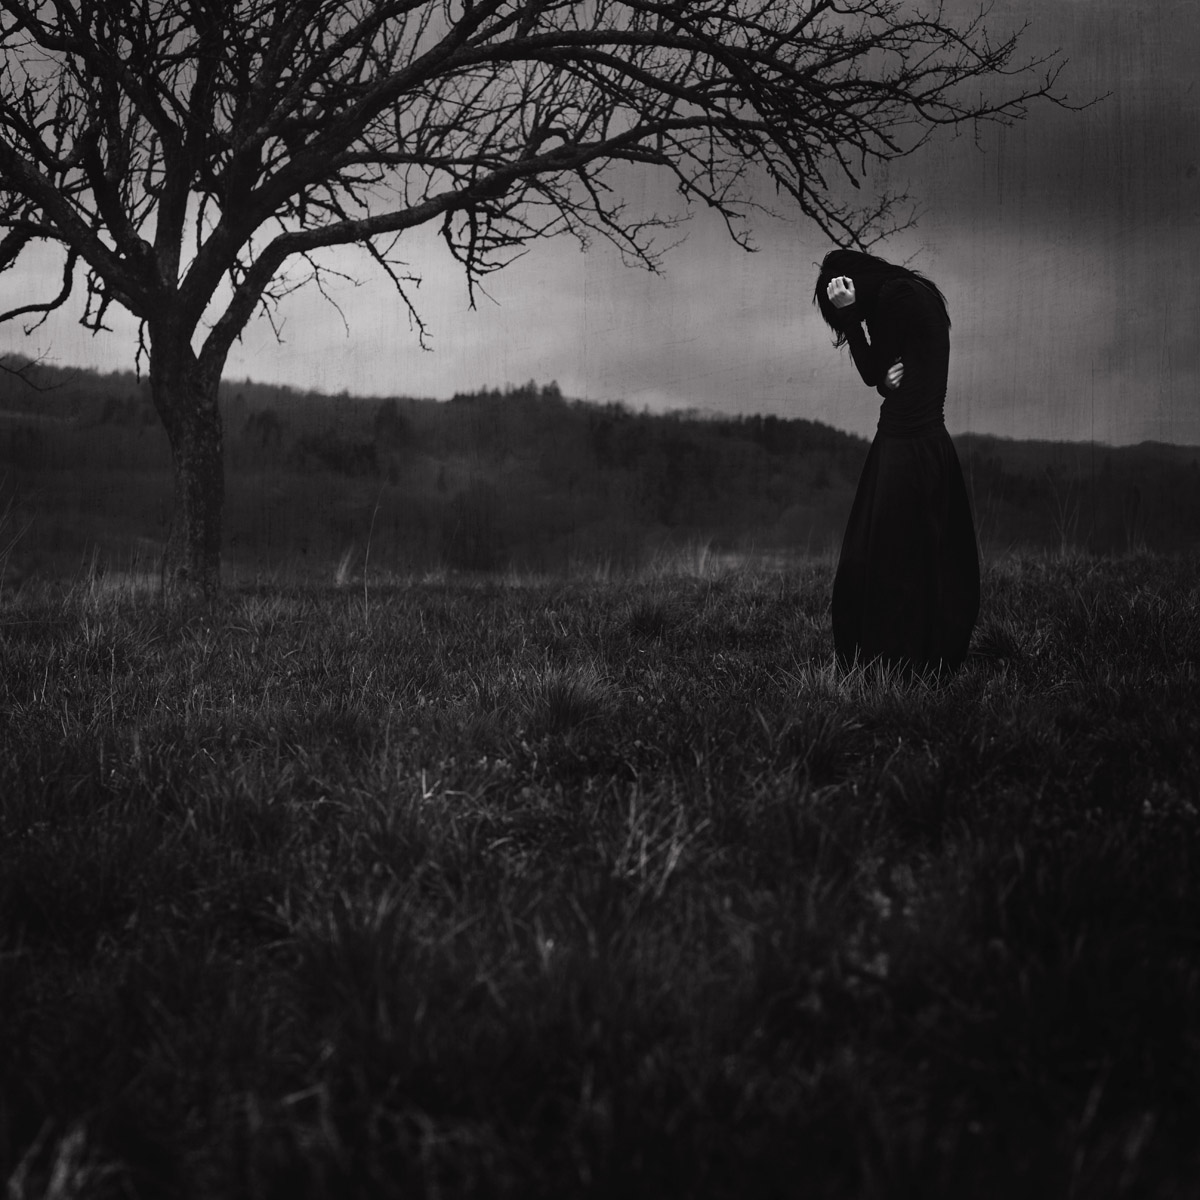 Where we used to meet | Anja Matko